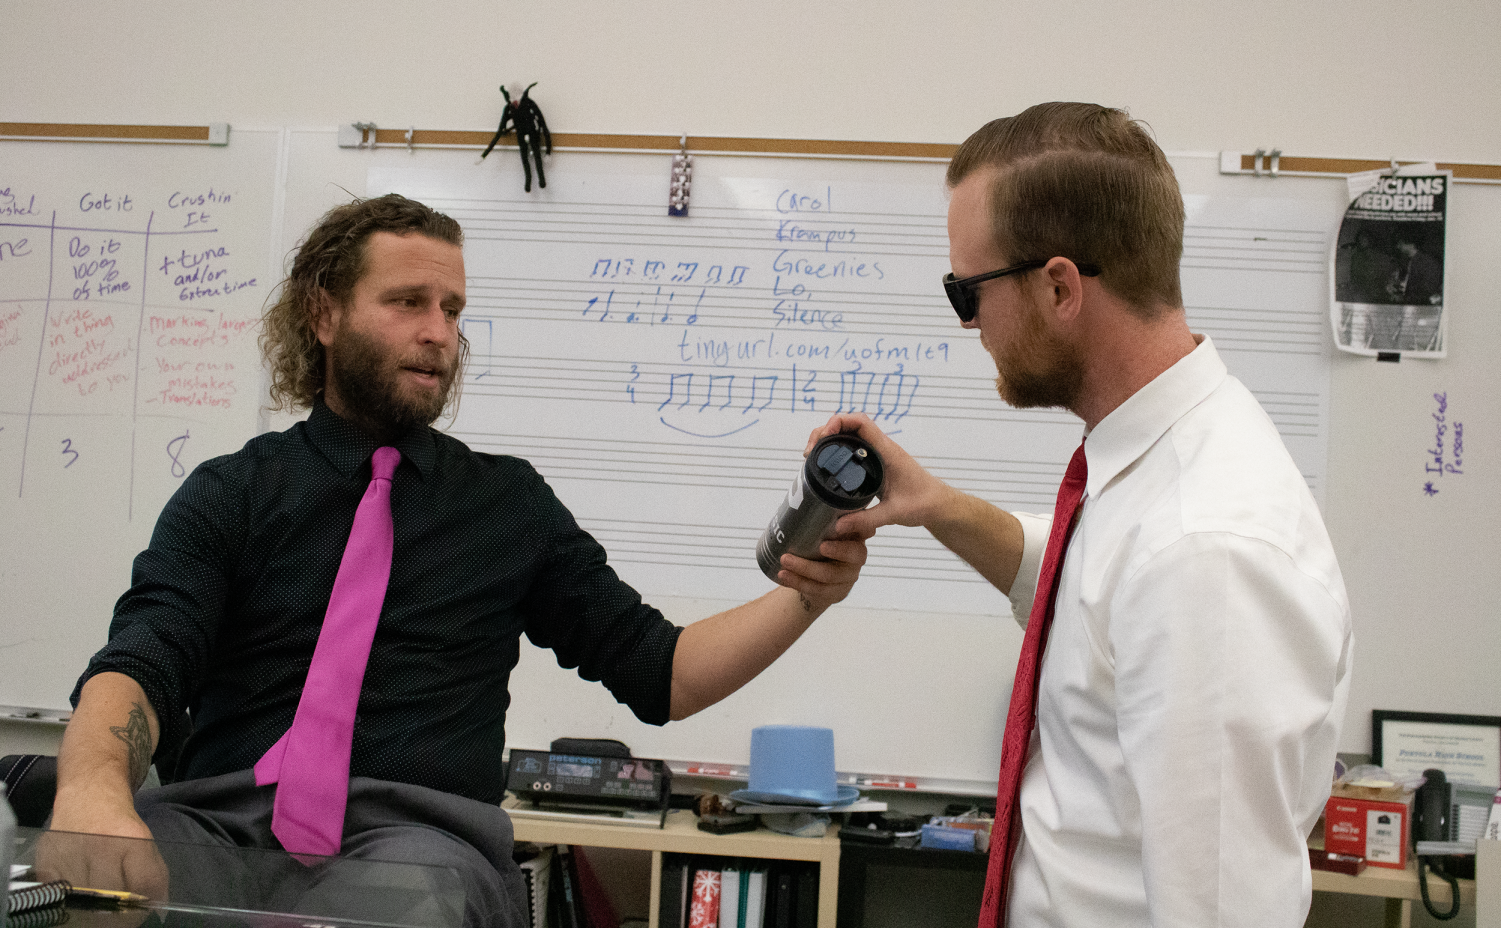 During break, students can often find music directors Desmond Stevens and Kyle Traska conversing in the music room about topics ranging from instrumental compositions to the many ways that one can decorate a water bottle.